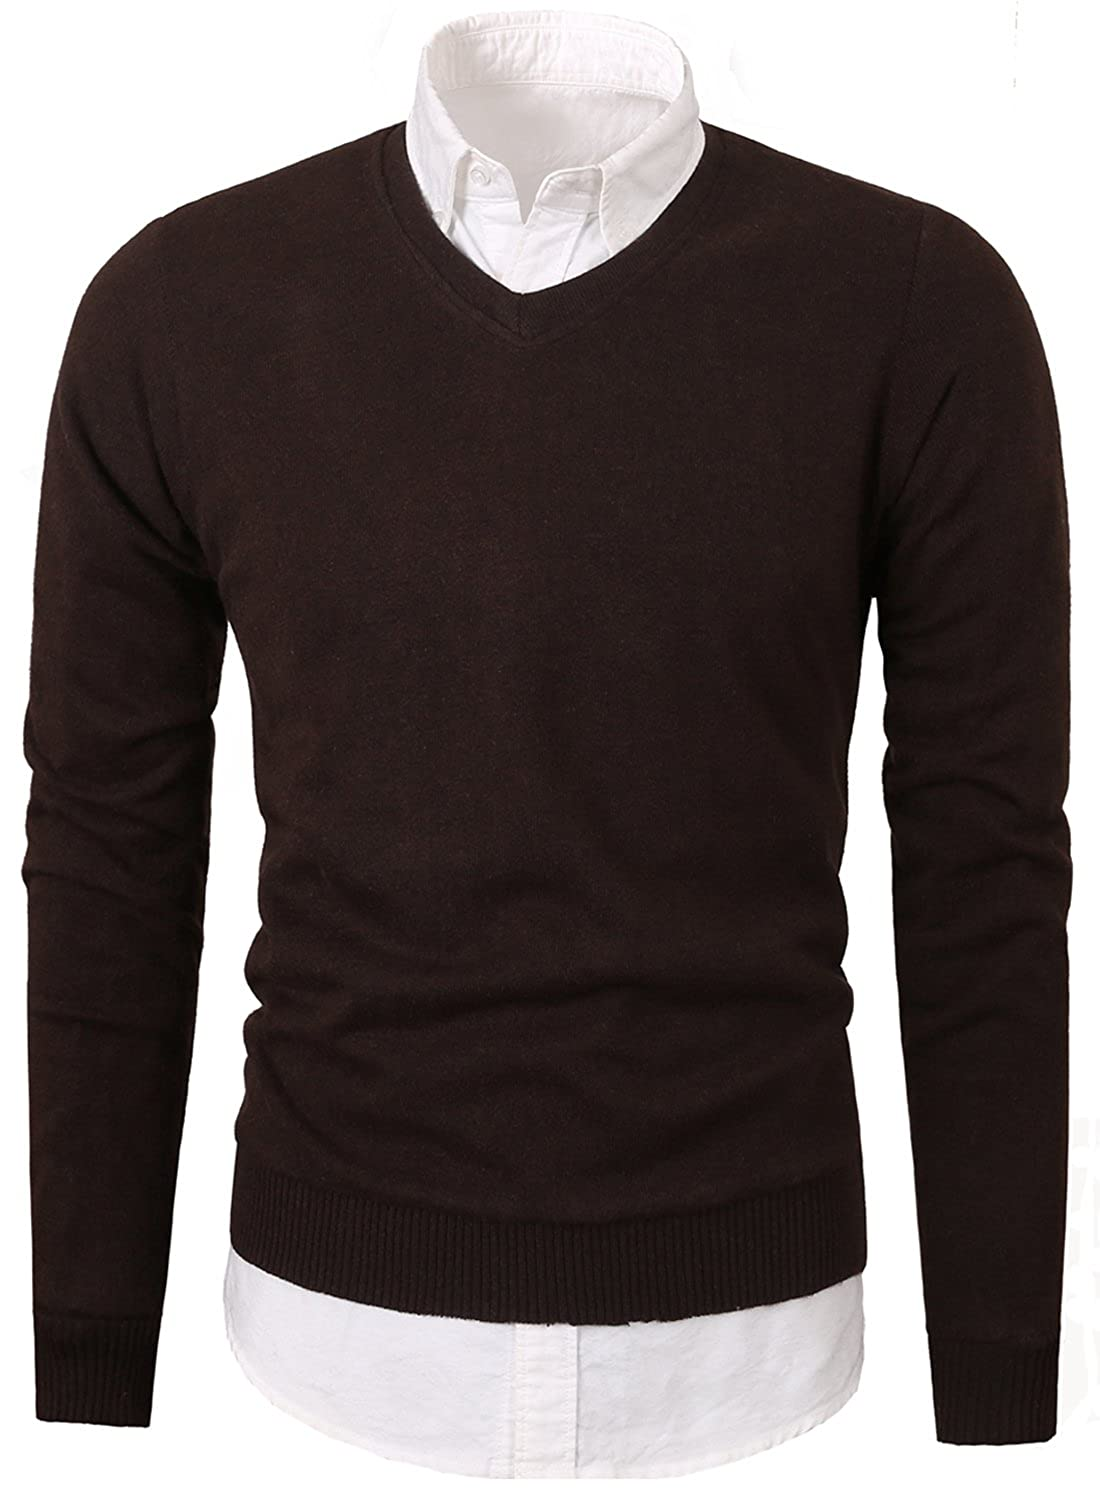 Mesahara Mens Casual Slim Fit Knit V-Neck Pullover Sweater